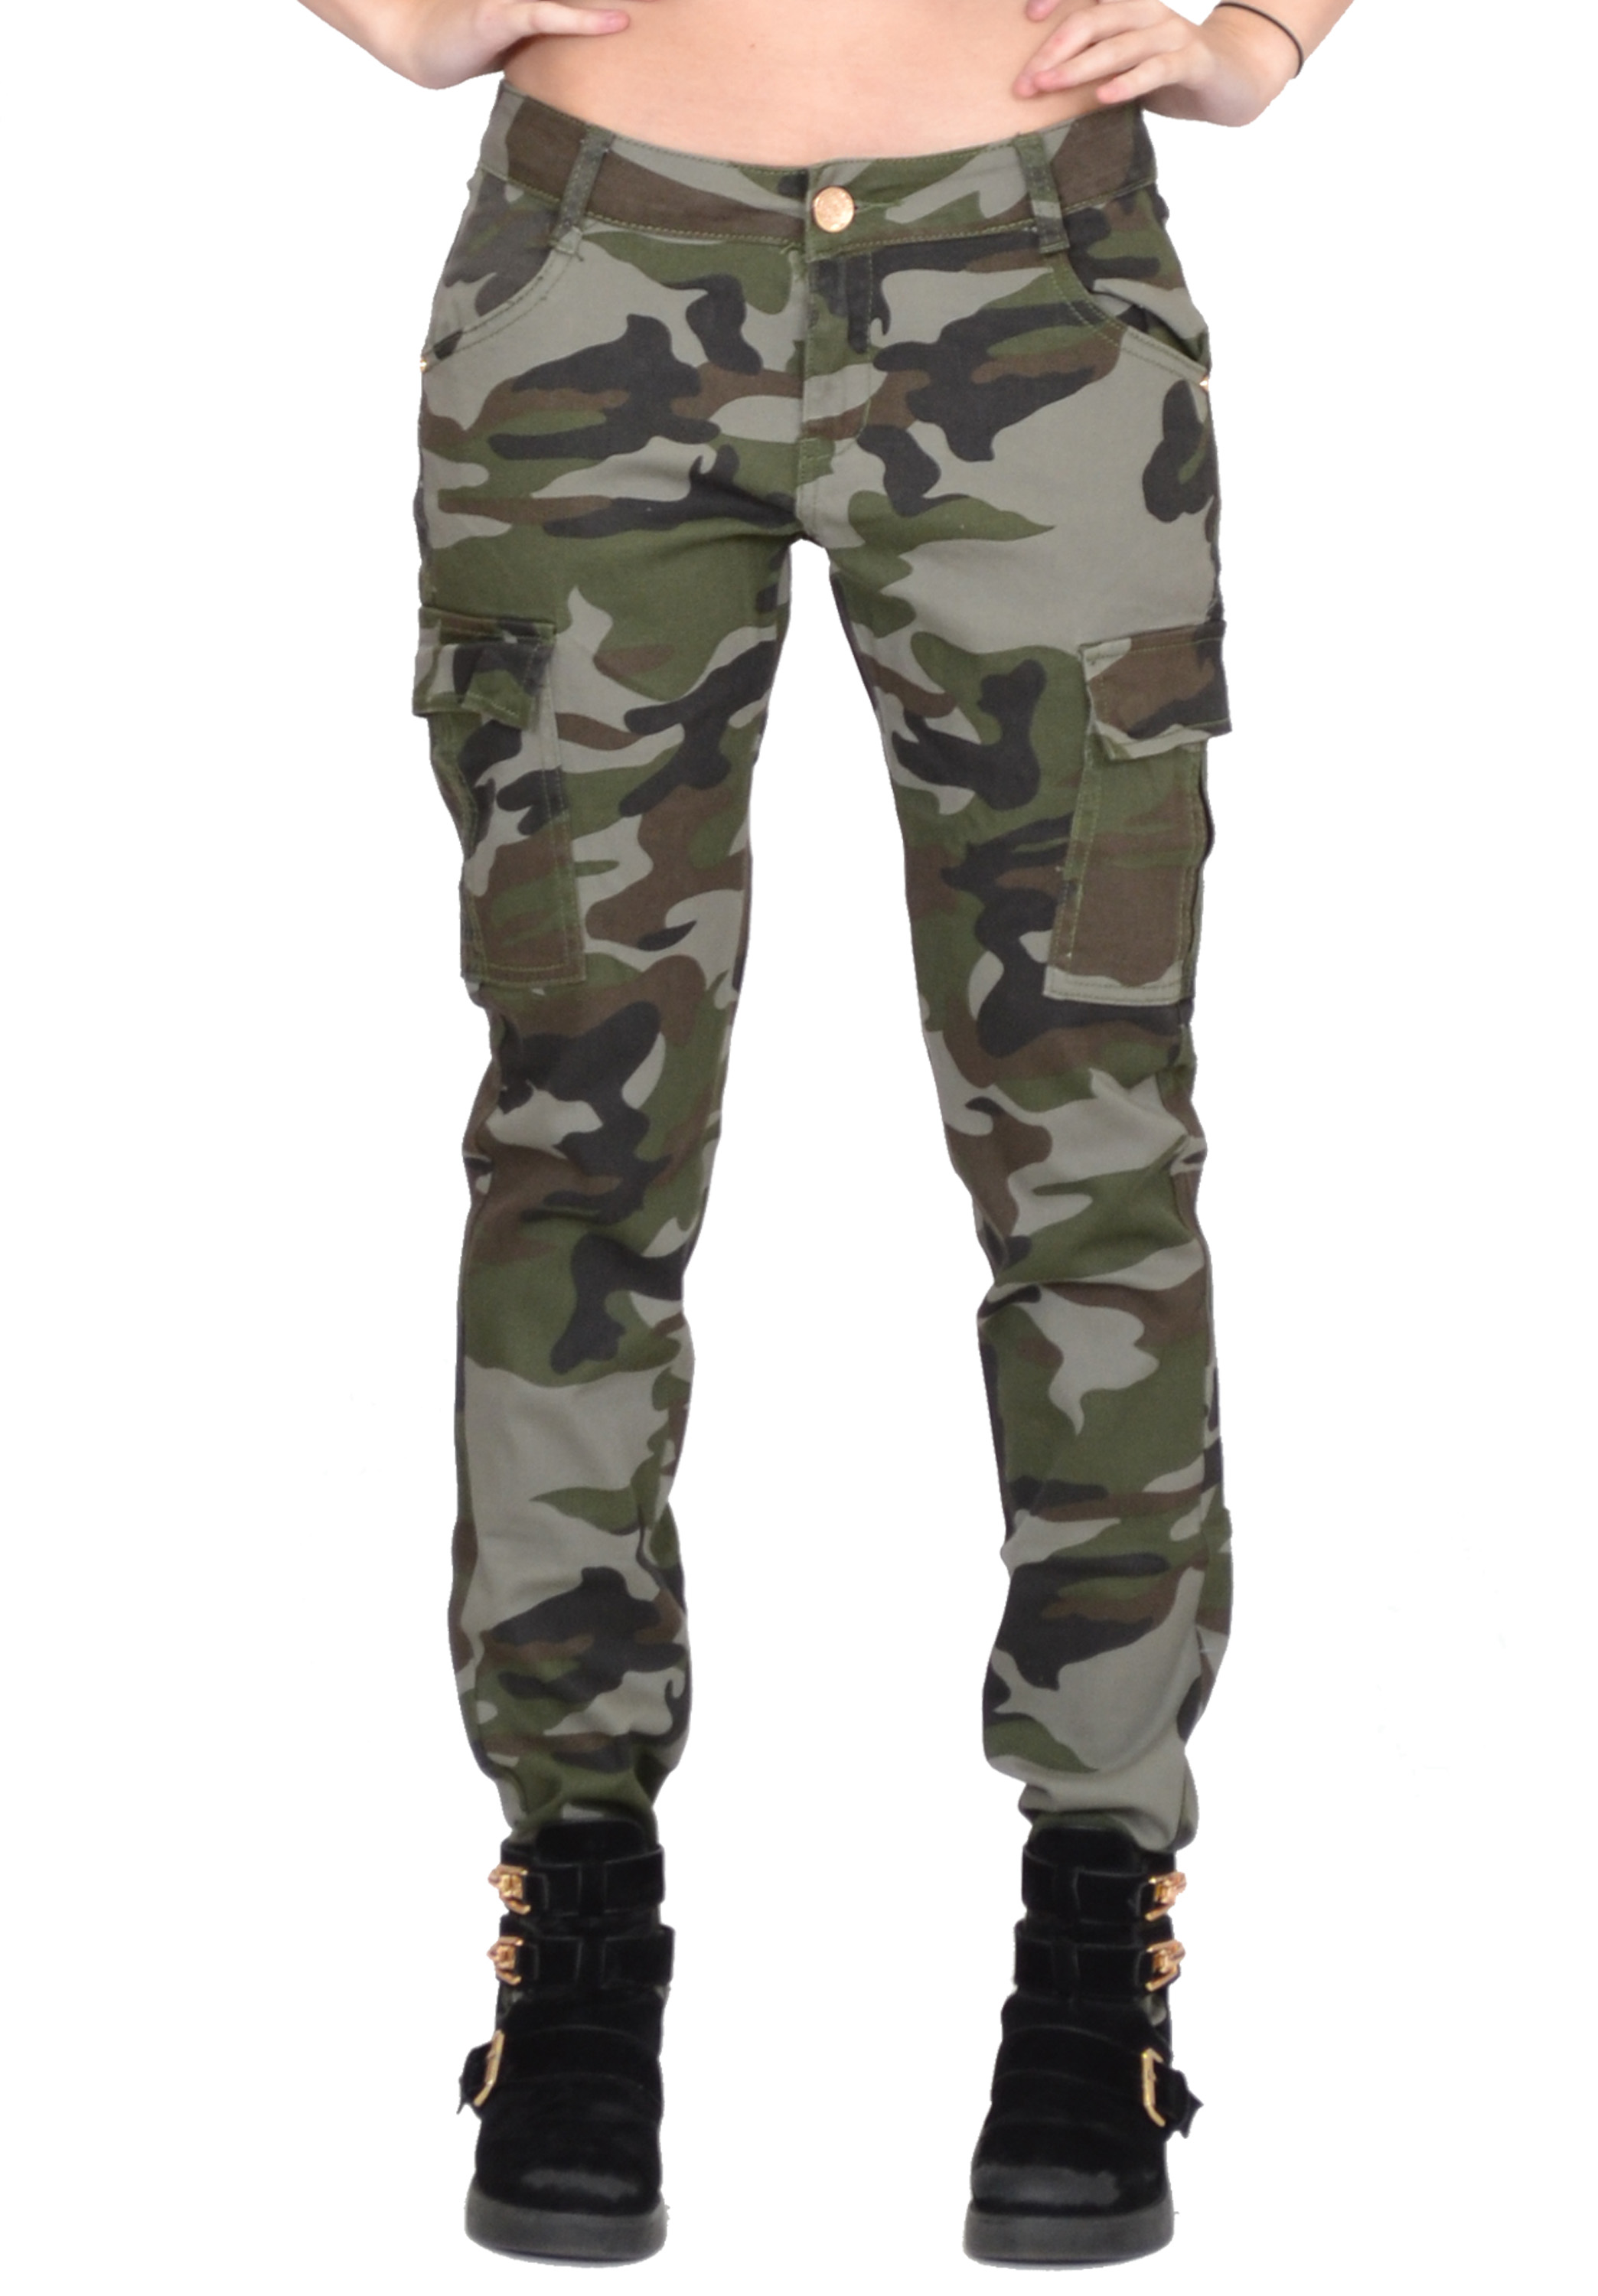 At Army Surplus World, we carry a selection of women's pants. Our women's pants selection includes vintage military style pants, capri pants, camo shorts, and more. Shop in stores and online today for affordable women's wear.